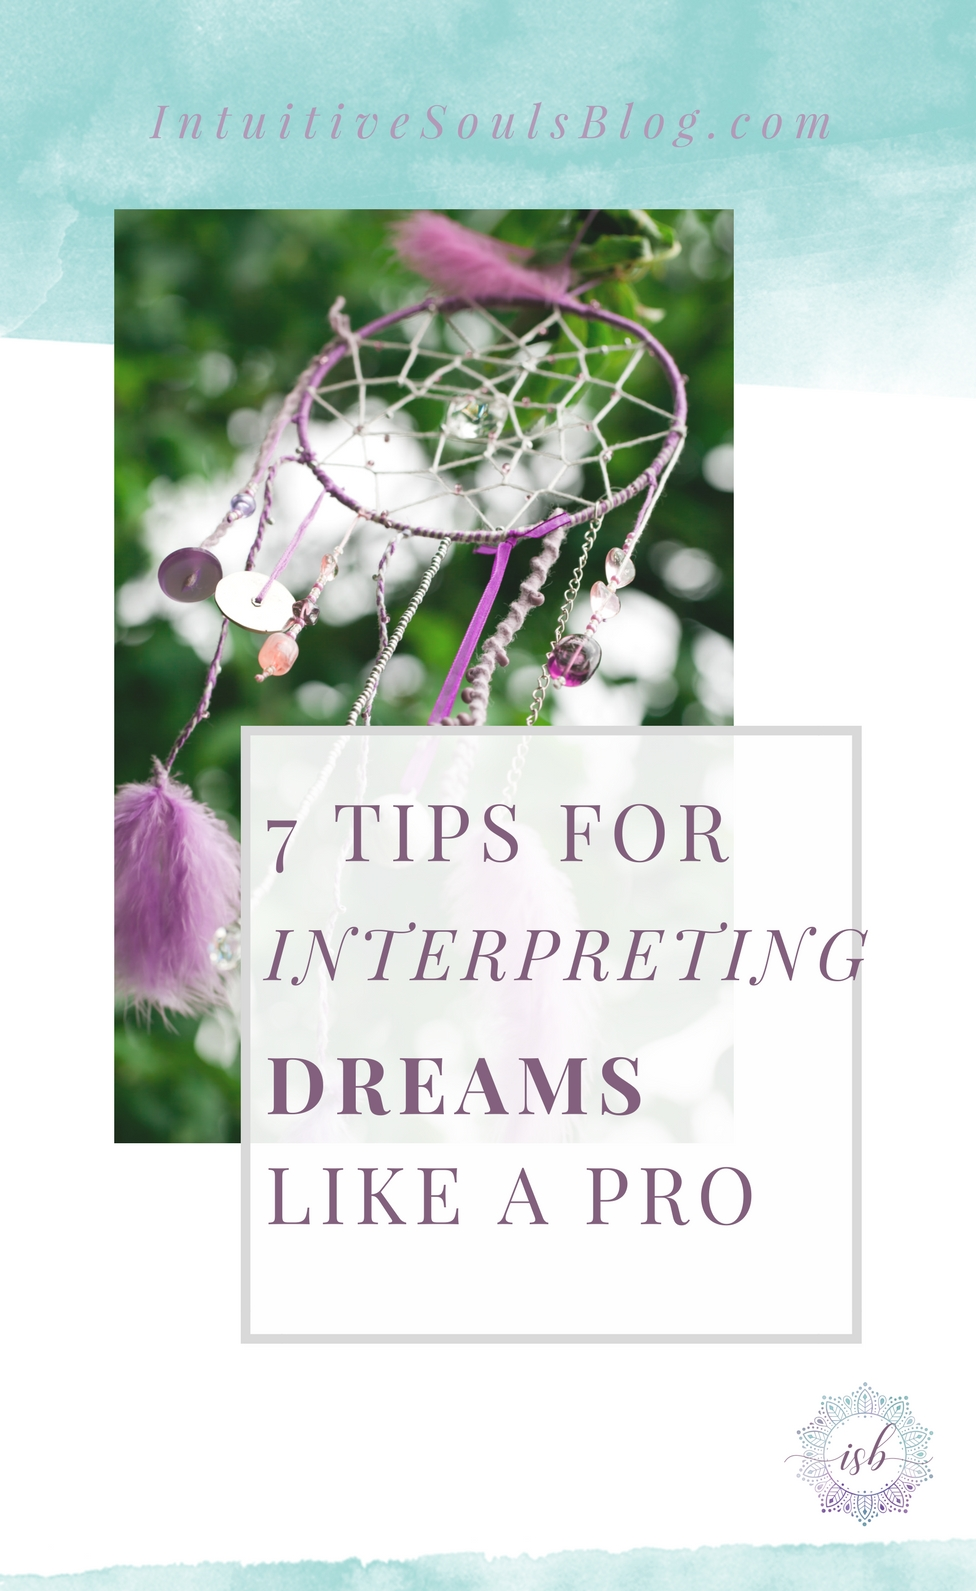 Once you know how to figure out the meaning of your dreams, sleep time and dream journaling becomes a lot more fun! Here are 7 tips that will help you interpret your dreams like a pro. Bonus: it's super easy!